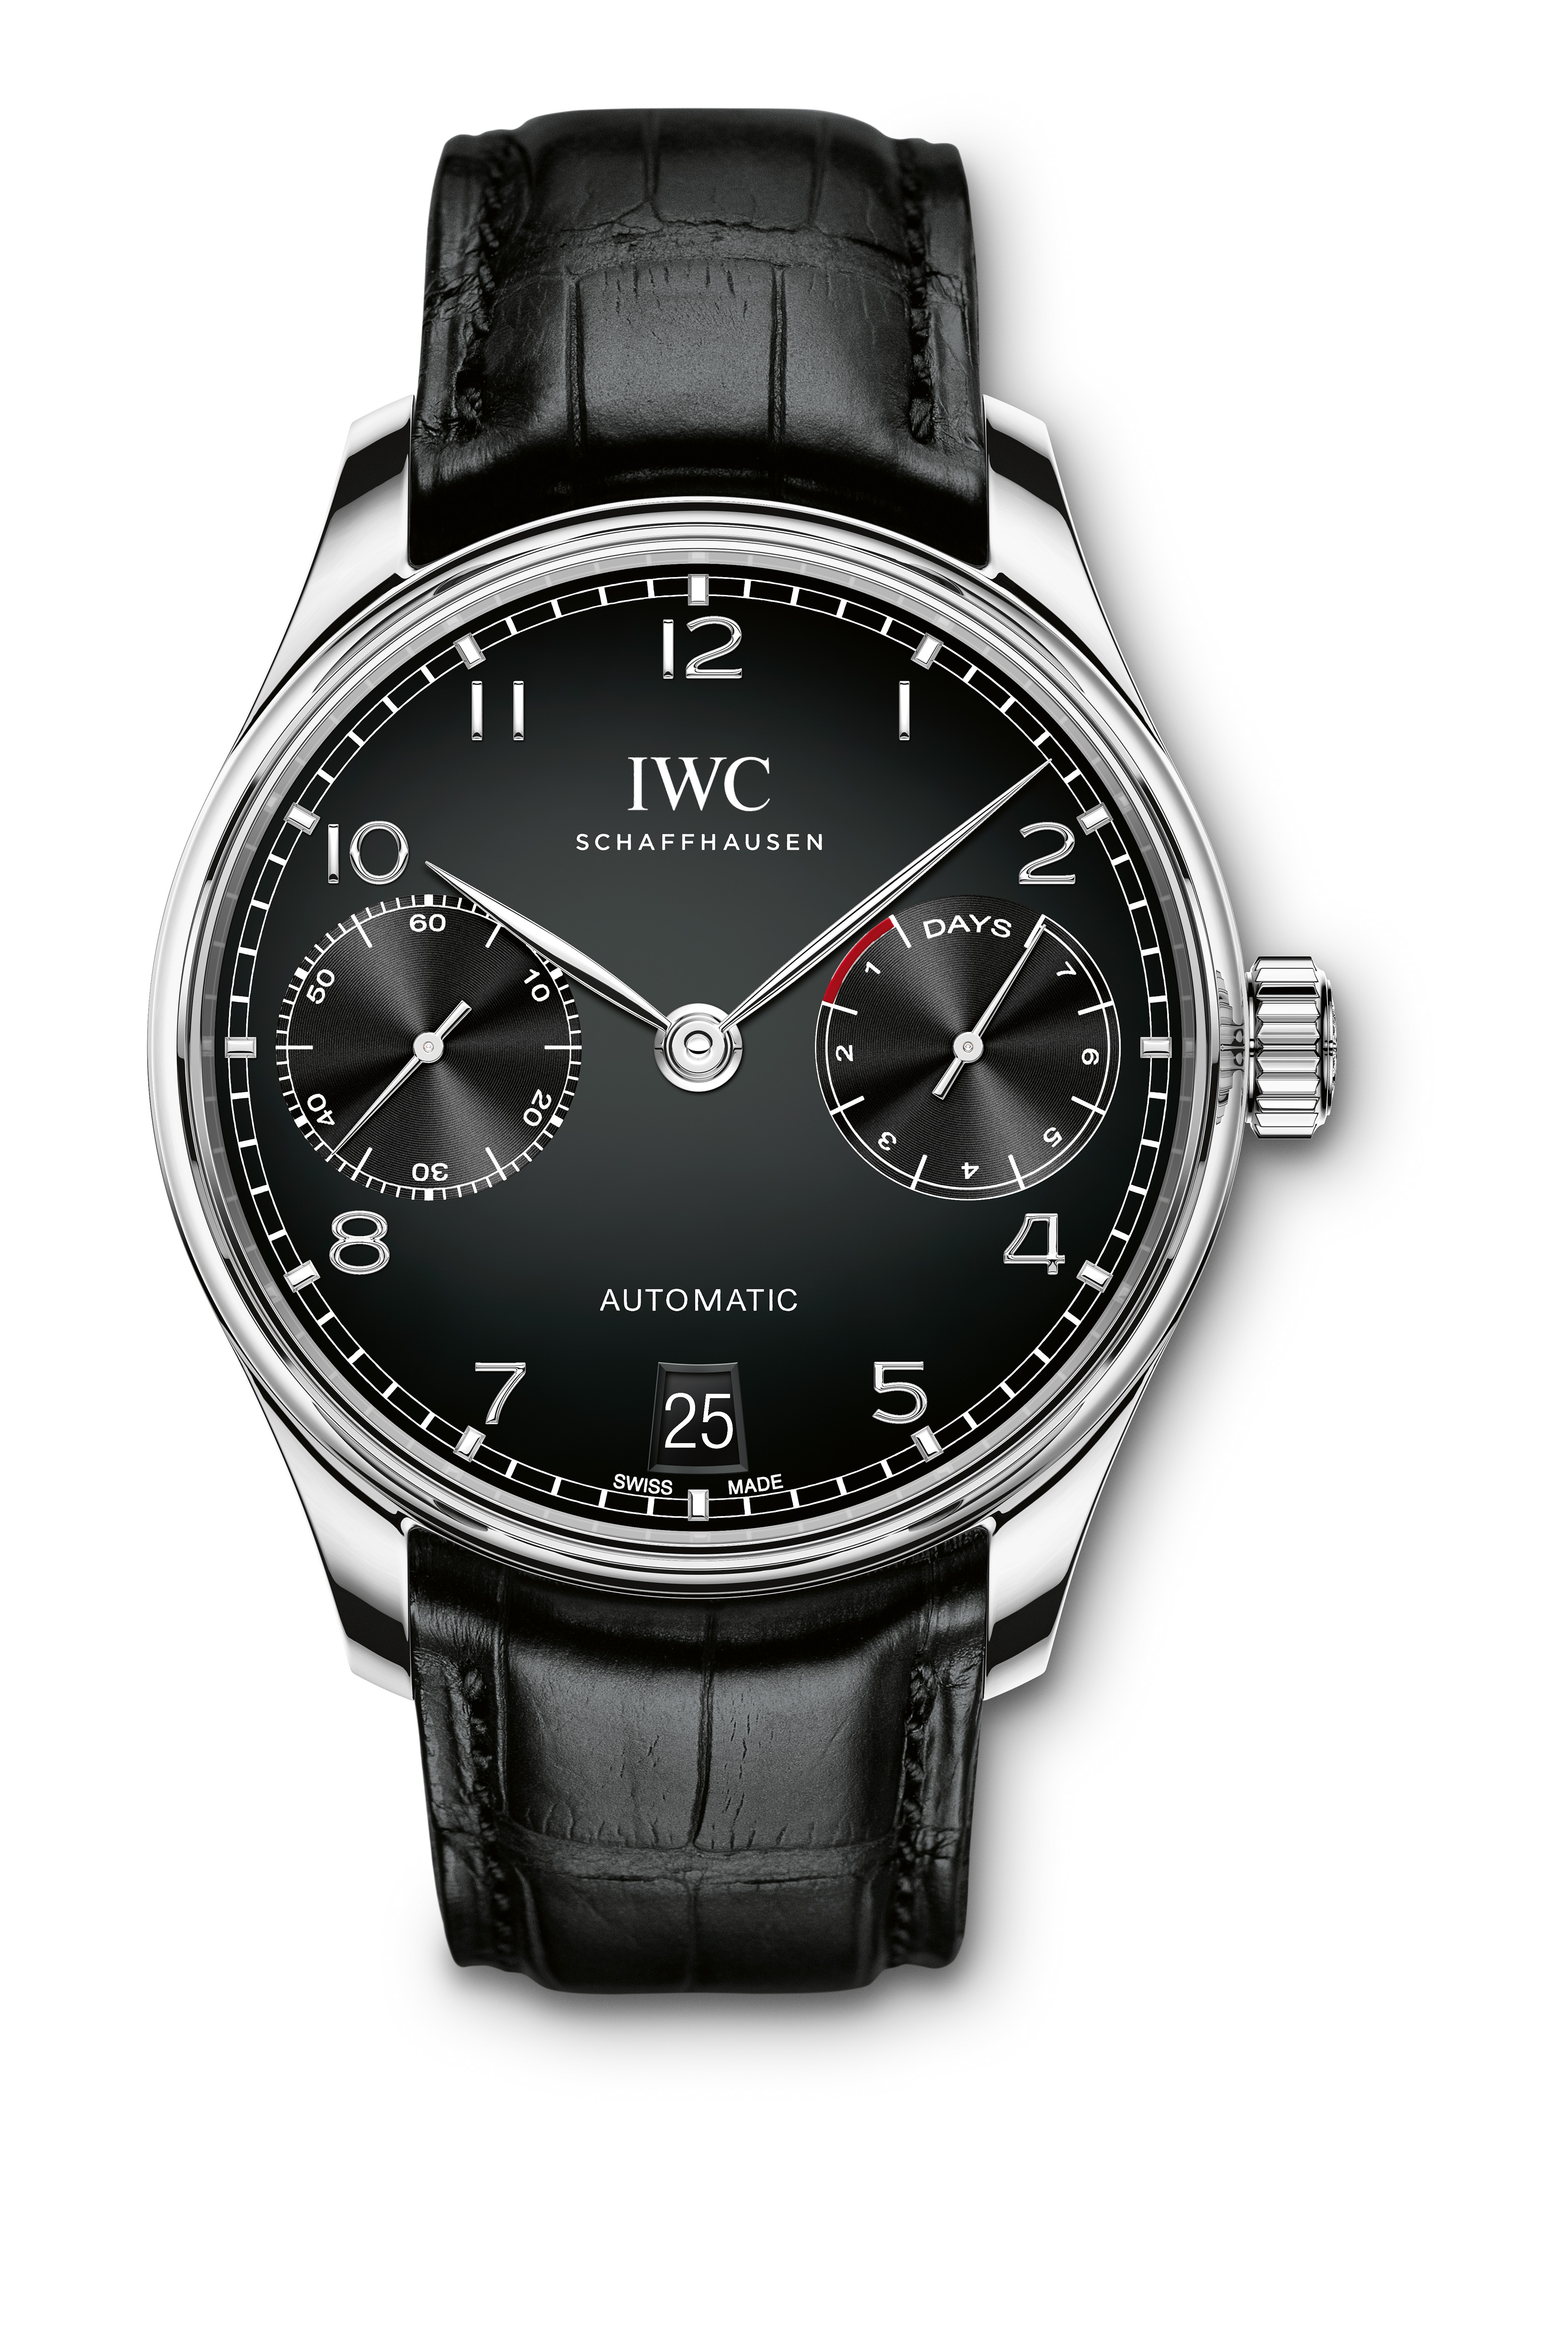 HANDOUT - The Portugieser Automatic (Ref. IW500703) from IWC Schaffhausen: case in stainless steel, black dial and black alligator leather strap with a folding clasp in stainless steel. (PHOTOPRESS/IWC)